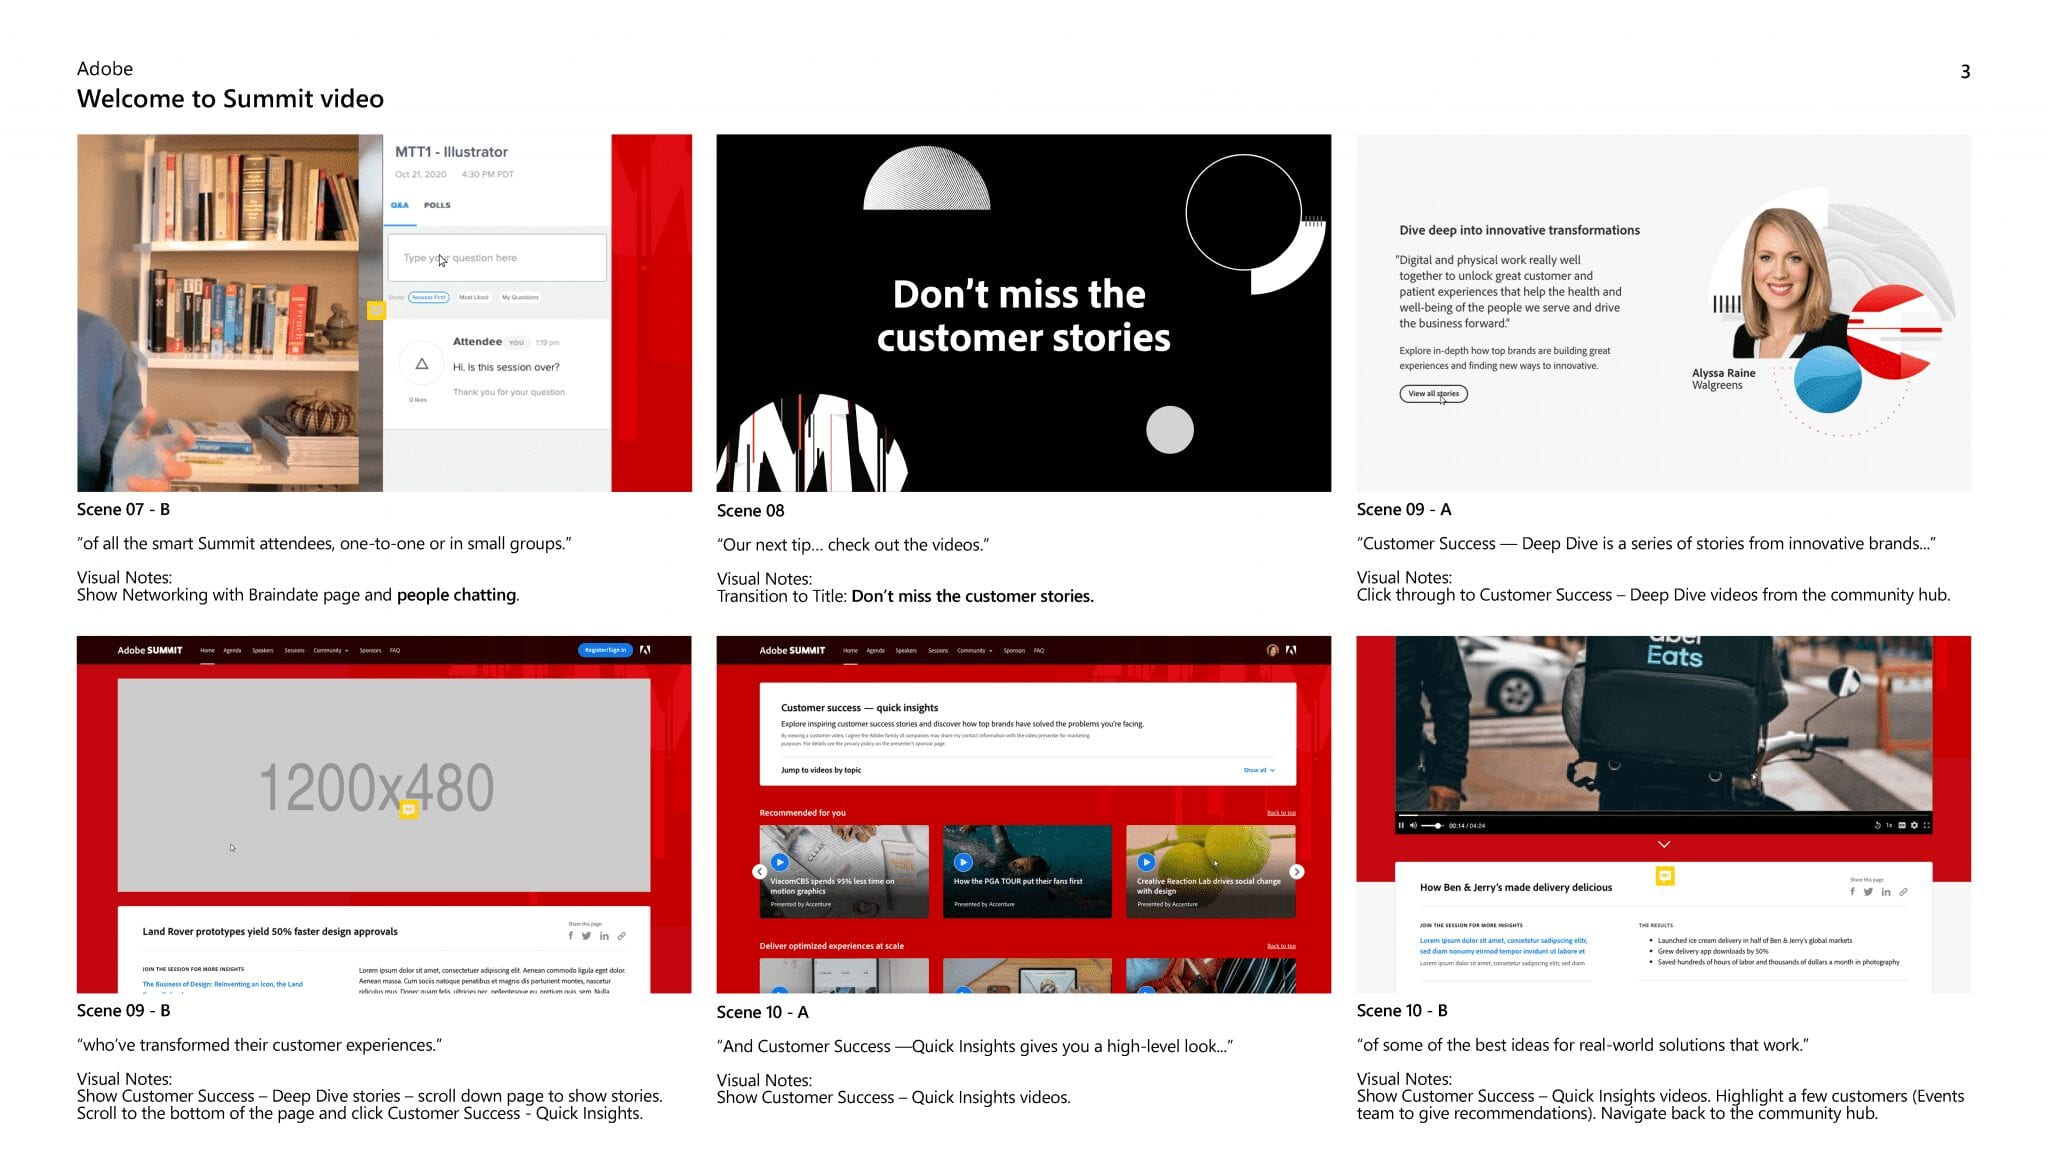 Adobe-Welcome-To-Summit-Video-V4_Page_04